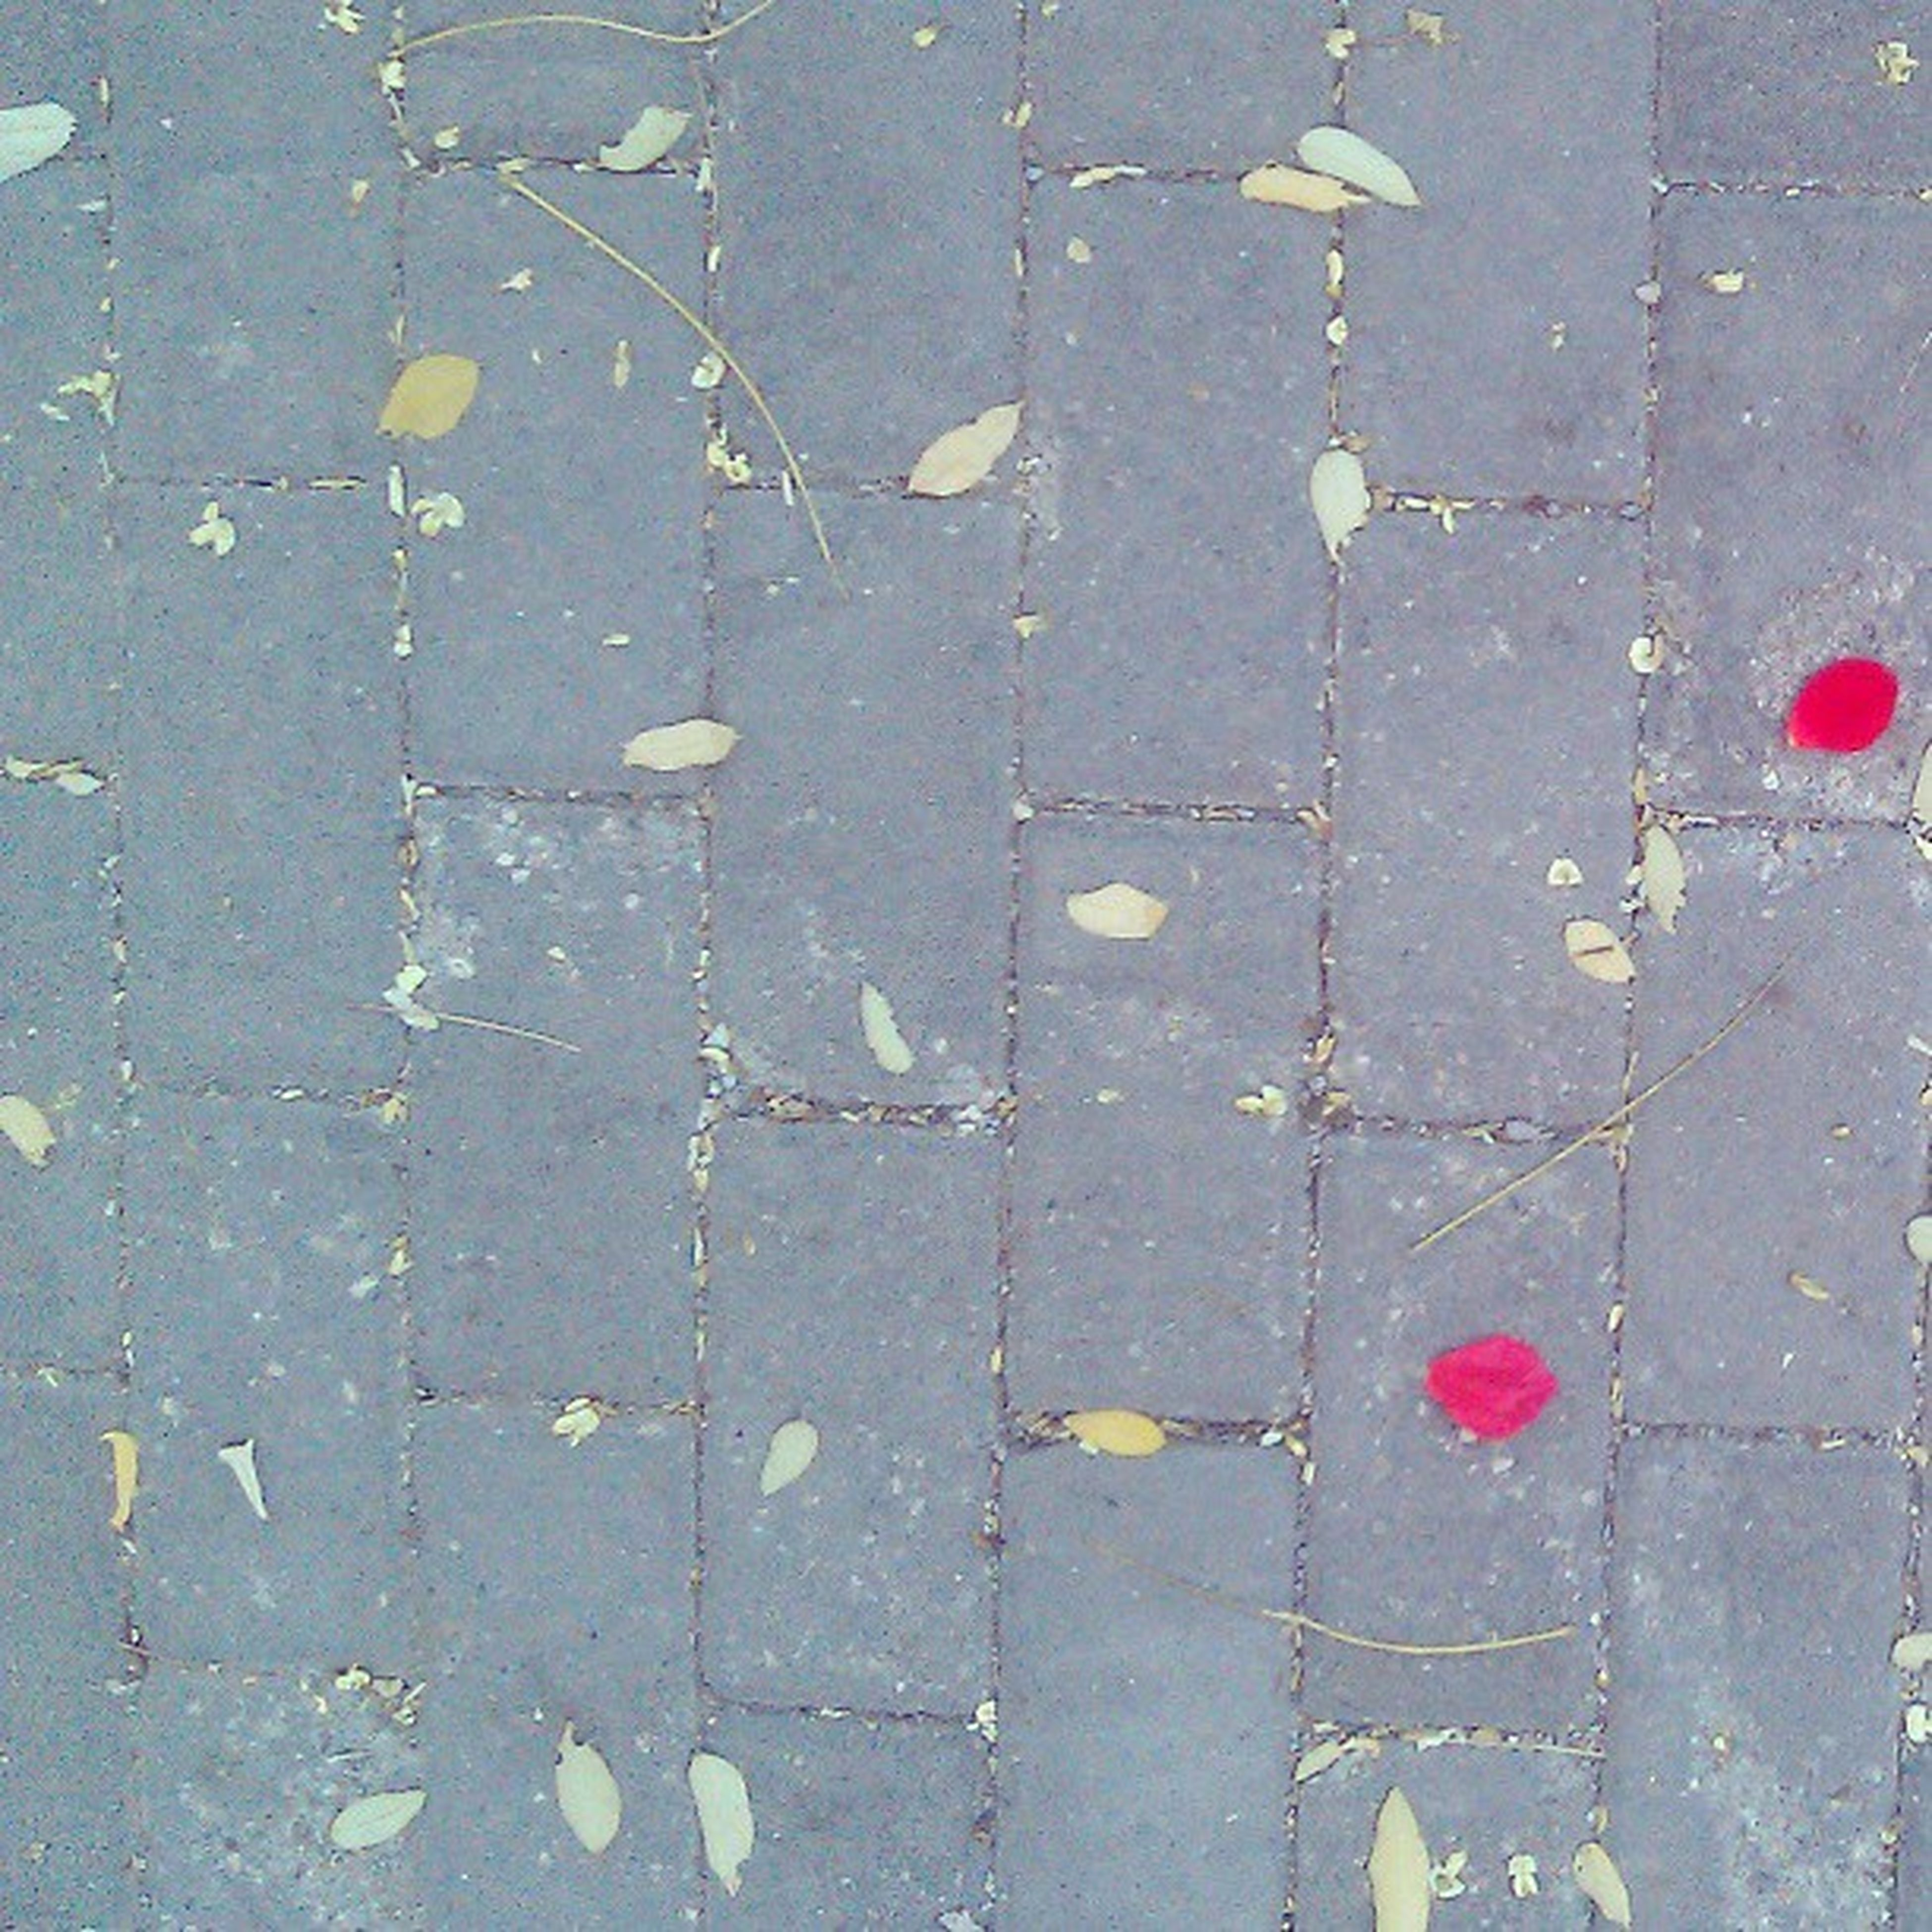 street, high angle view, asphalt, full frame, road marking, textured, road, backgrounds, pattern, red, day, outdoors, no people, sidewalk, cobblestone, close-up, transportation, paving stone, guidance, pavement